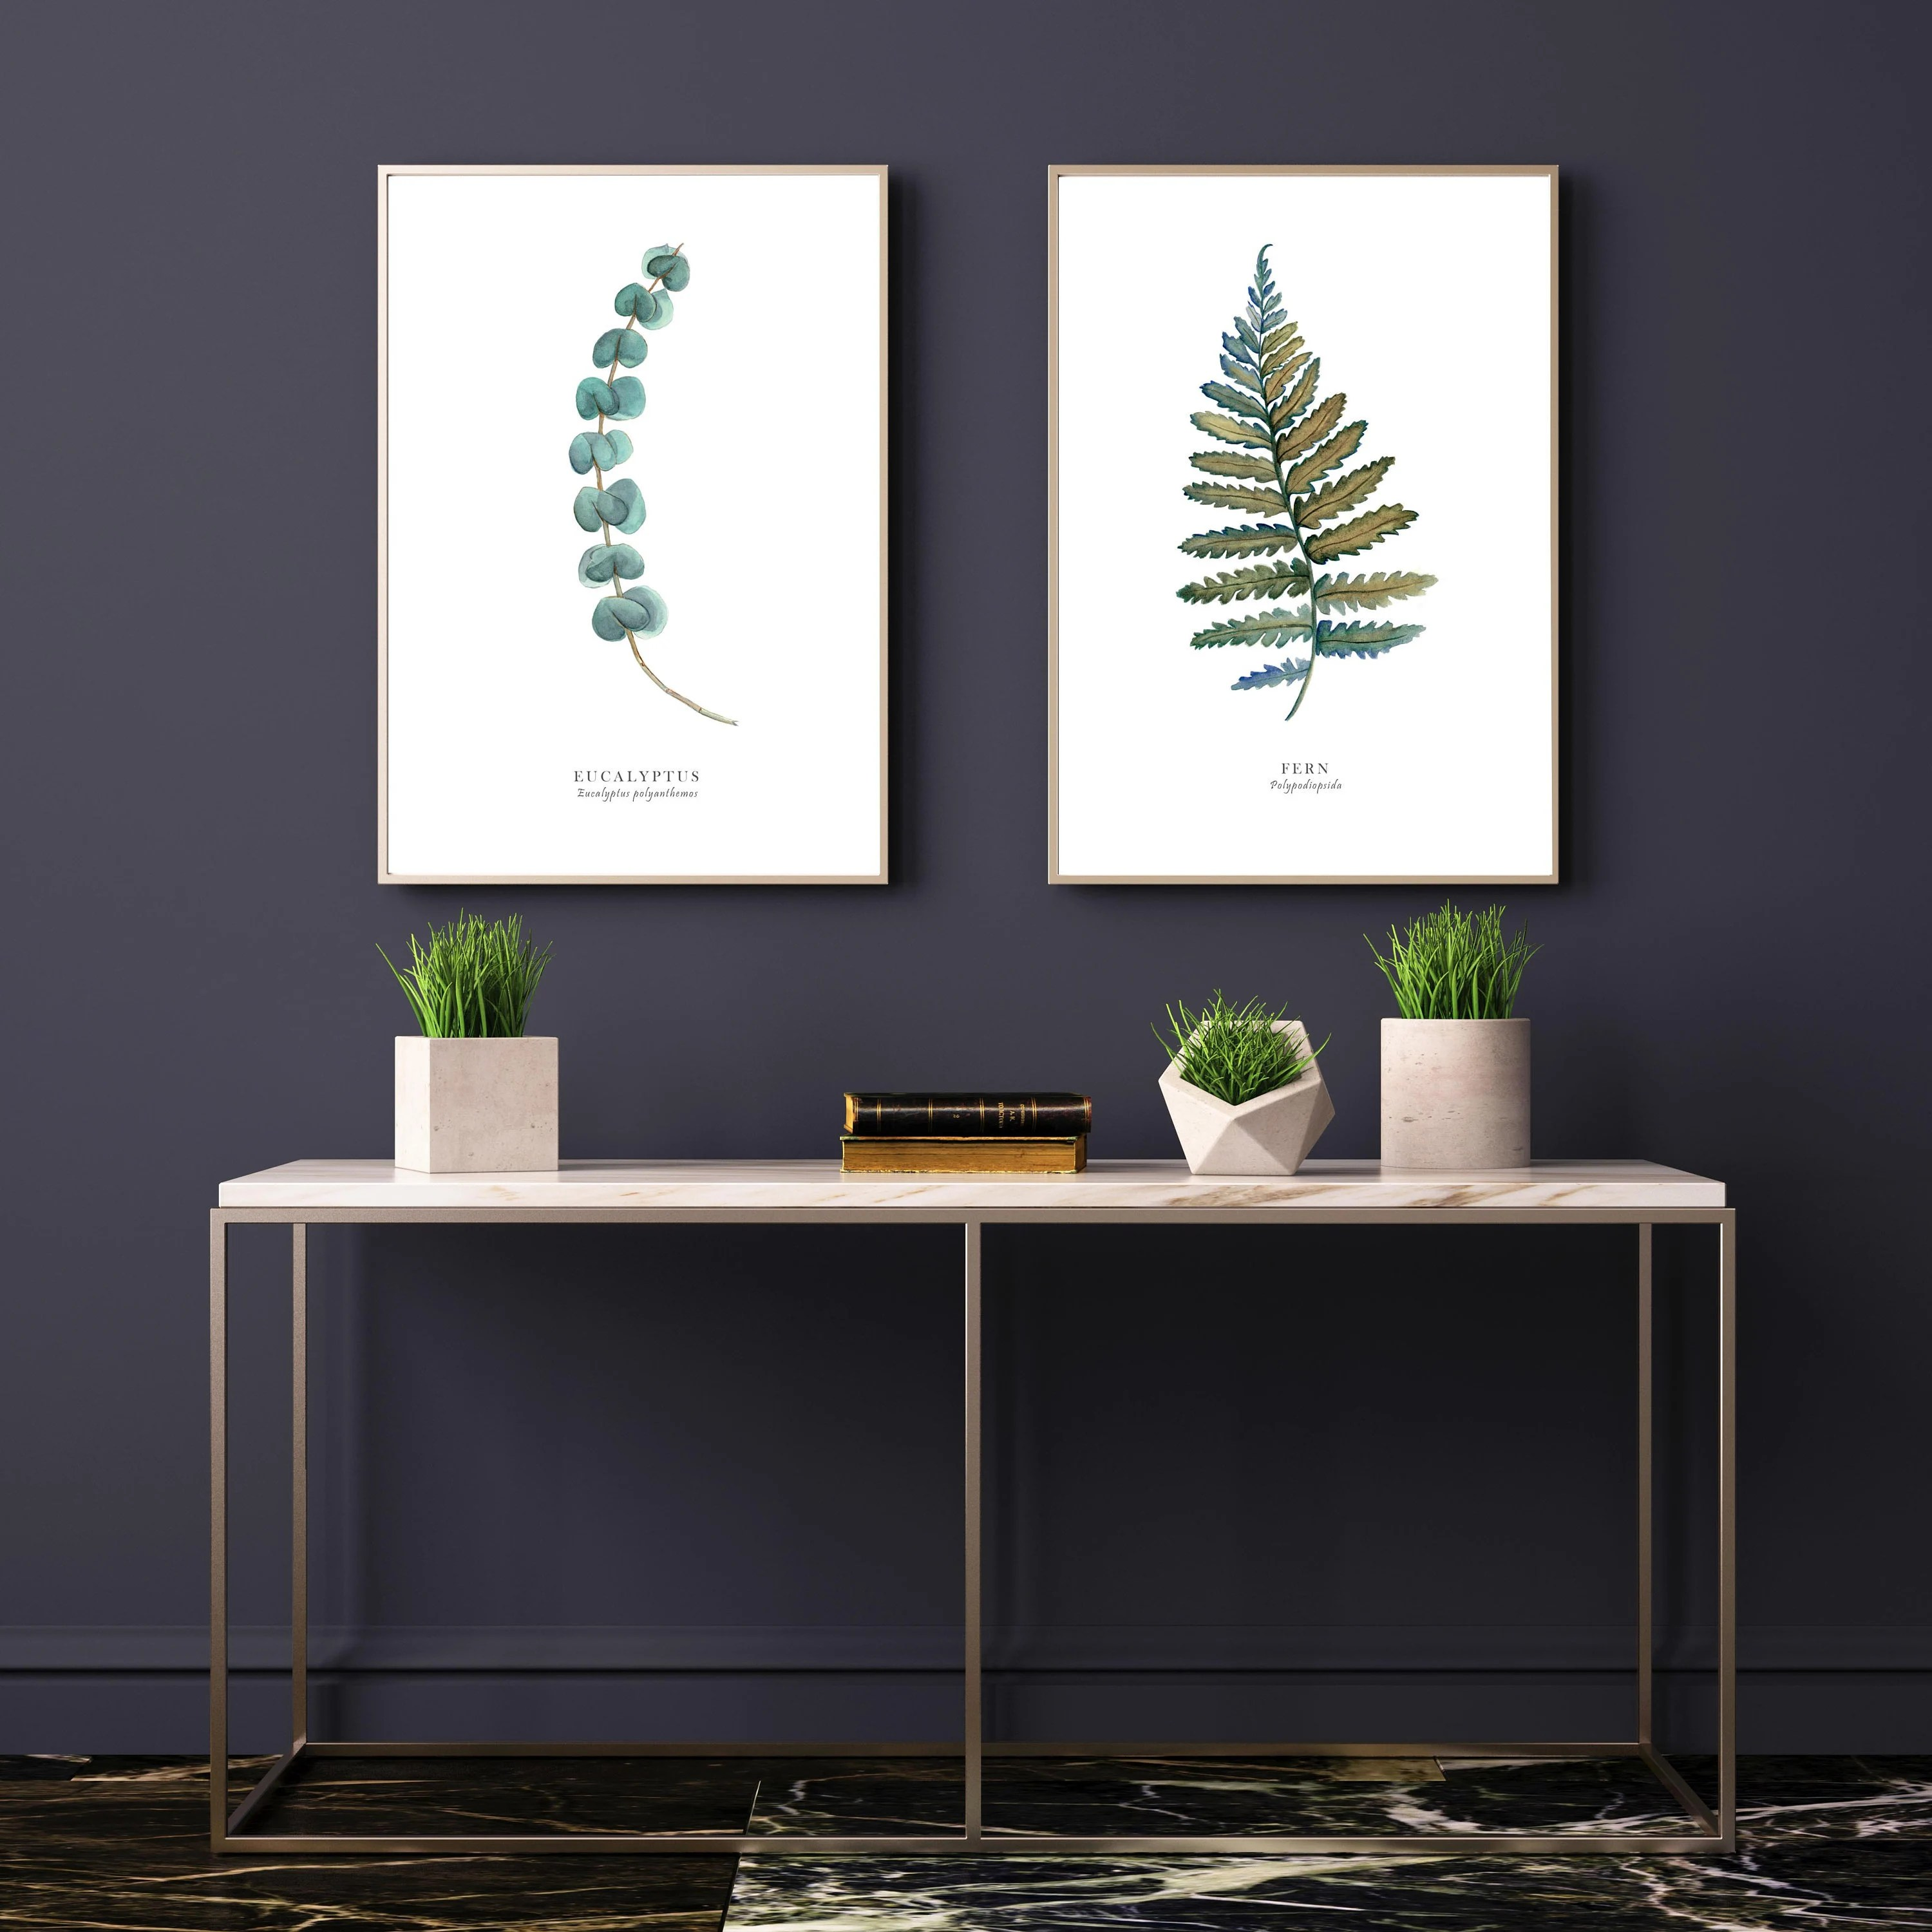 art in living room decorating ideas with black leather furniture etsy set of 2 watercolour paintings eucalyptus fern leaf botanical wall home decor